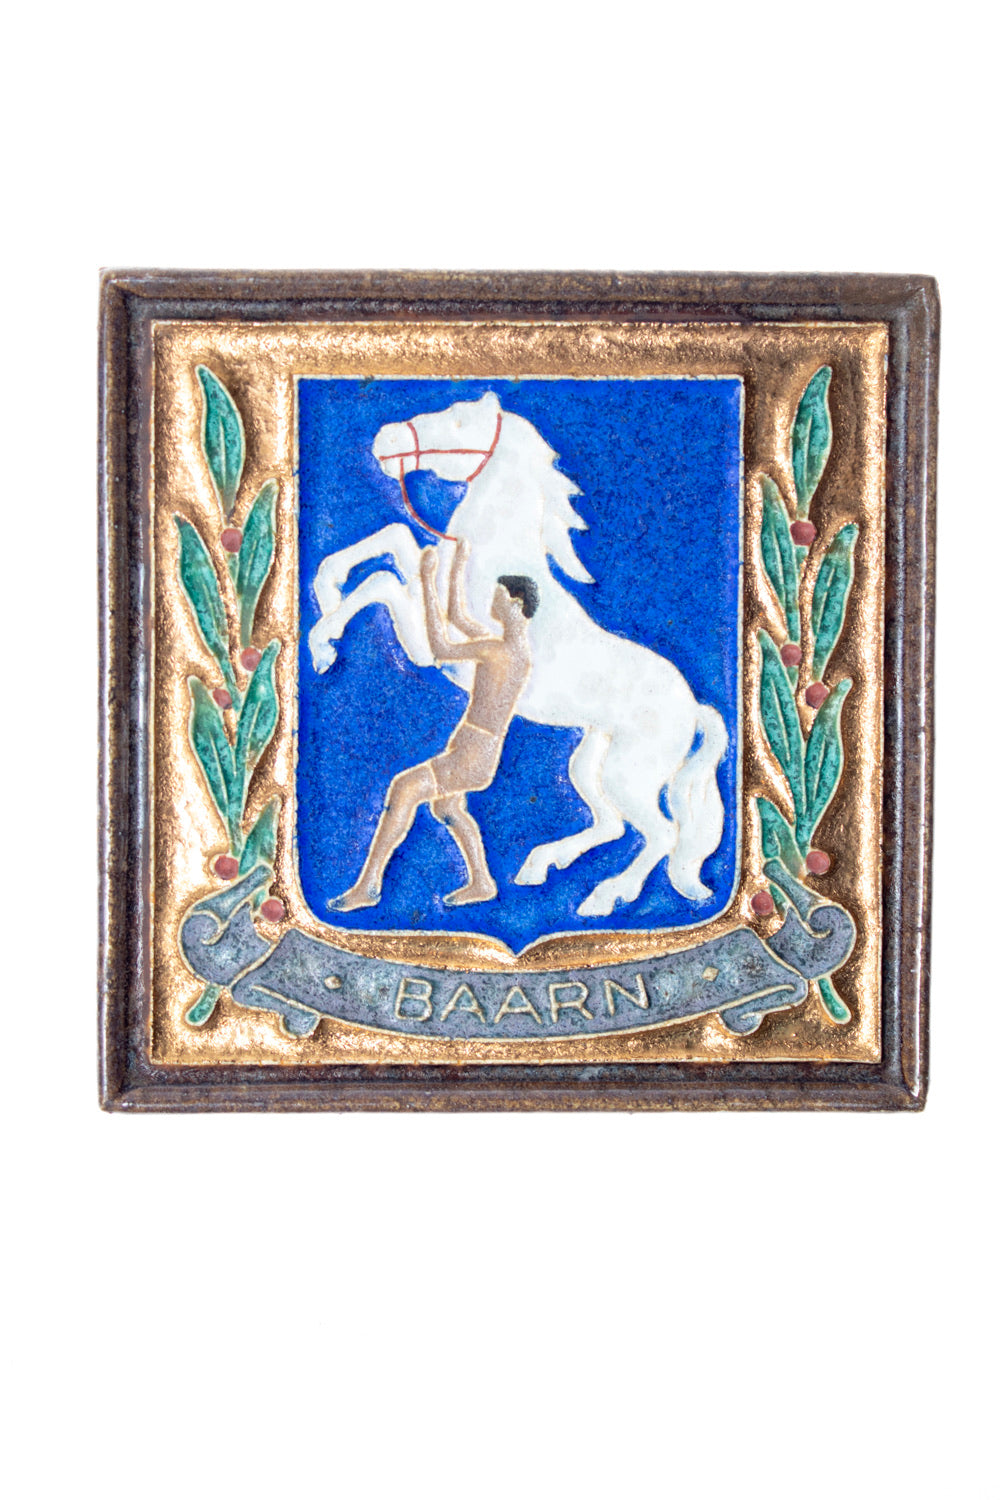 Nice royal delft tile with horse, Baarn